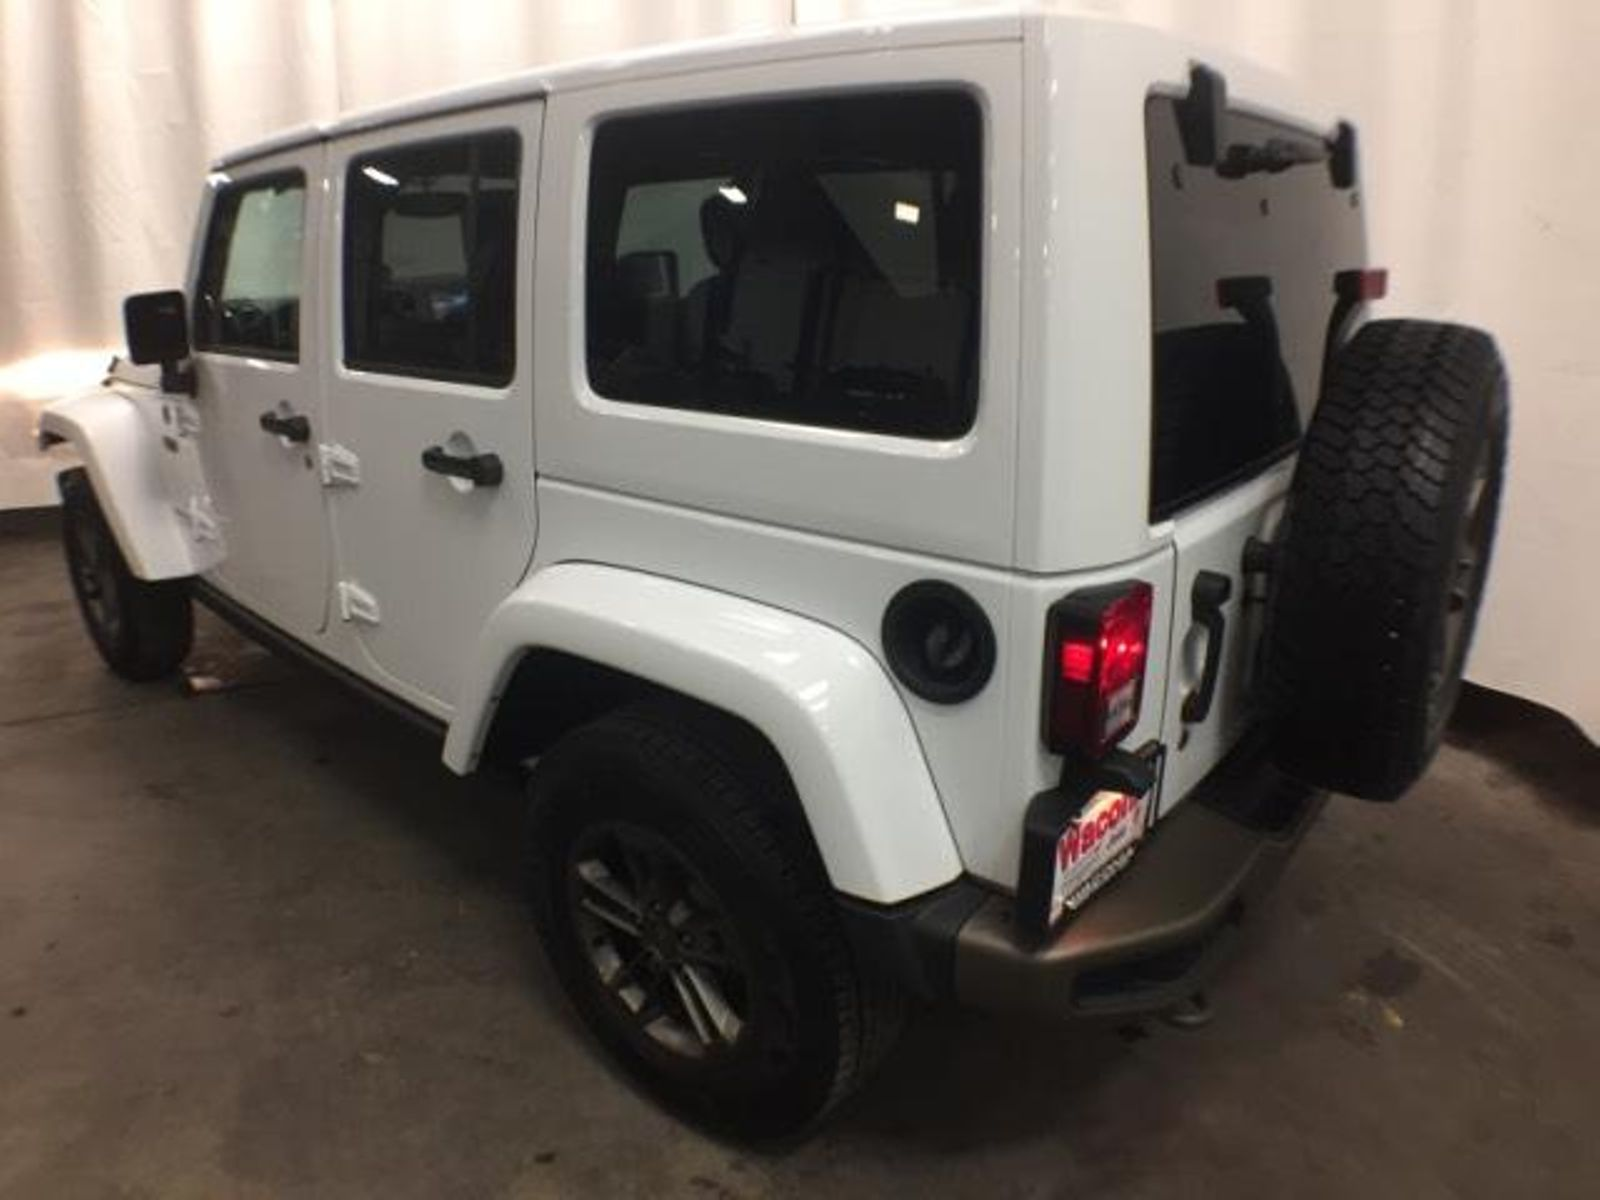 s jeep edition anniversary history models en the unlimited galleries brand celebrate cherokee special wrangler year